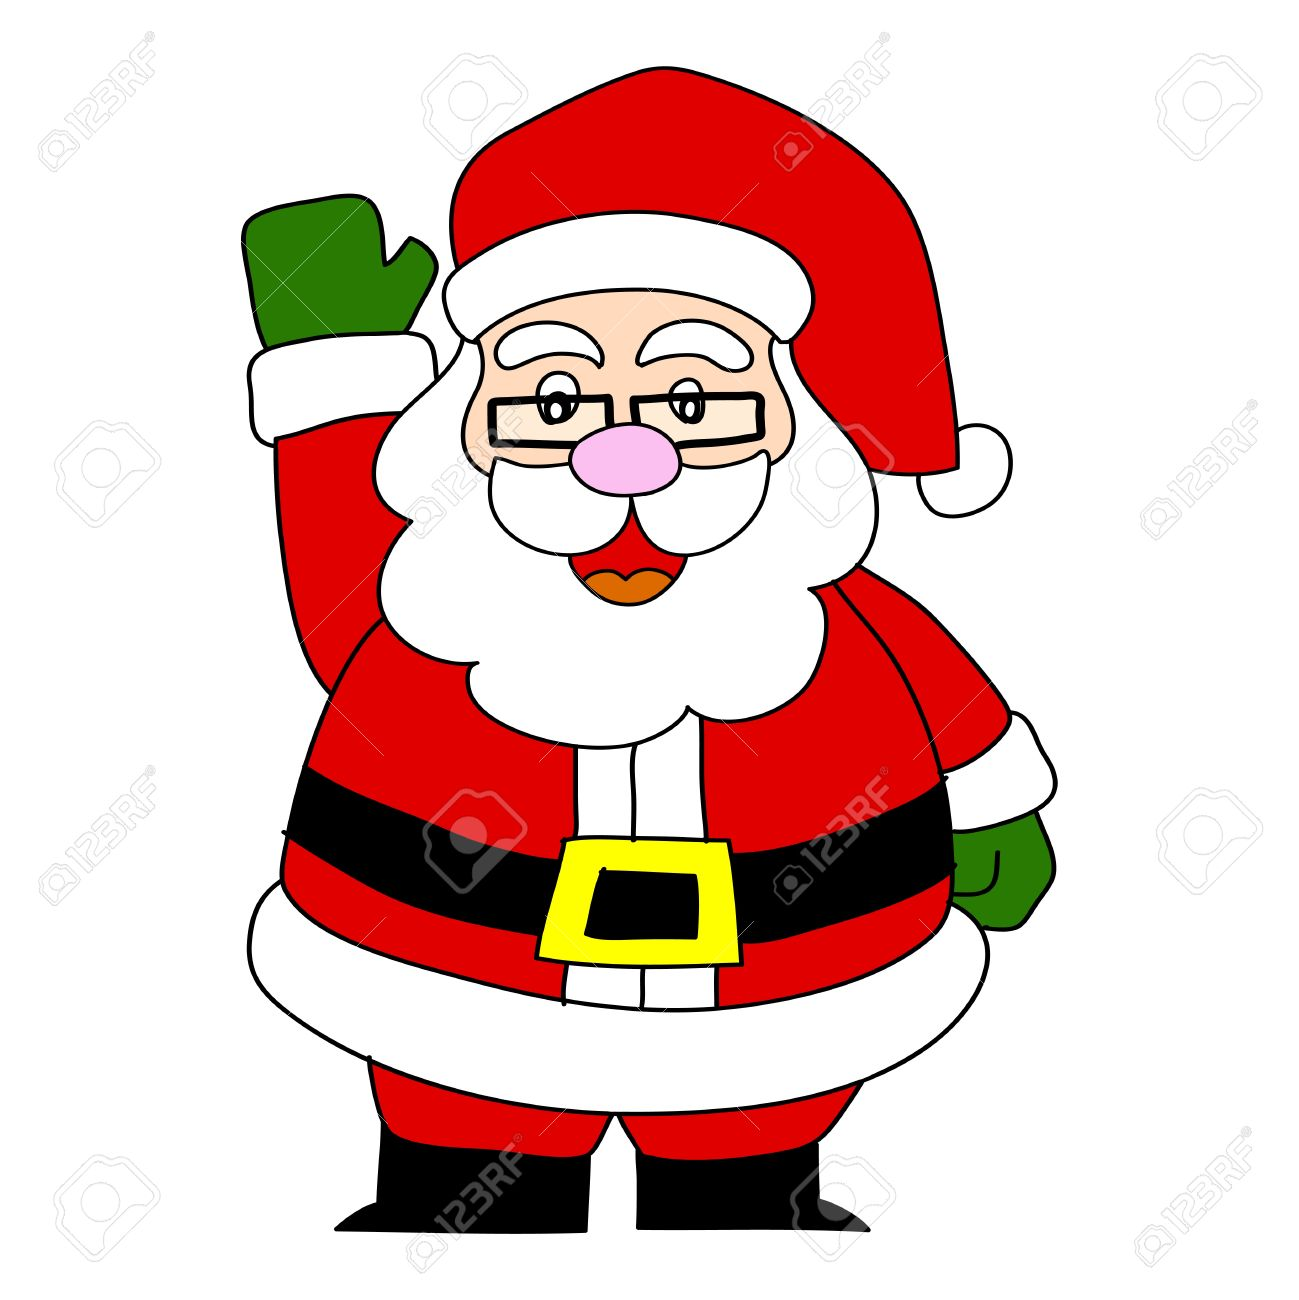 Cartoon Santa Claus Royalty Free Cliparts Vectors And Stock Illustration Image 15580030 See more ideas about santa cartoon, christmas cartoons, christmas drawing. cartoon santa claus